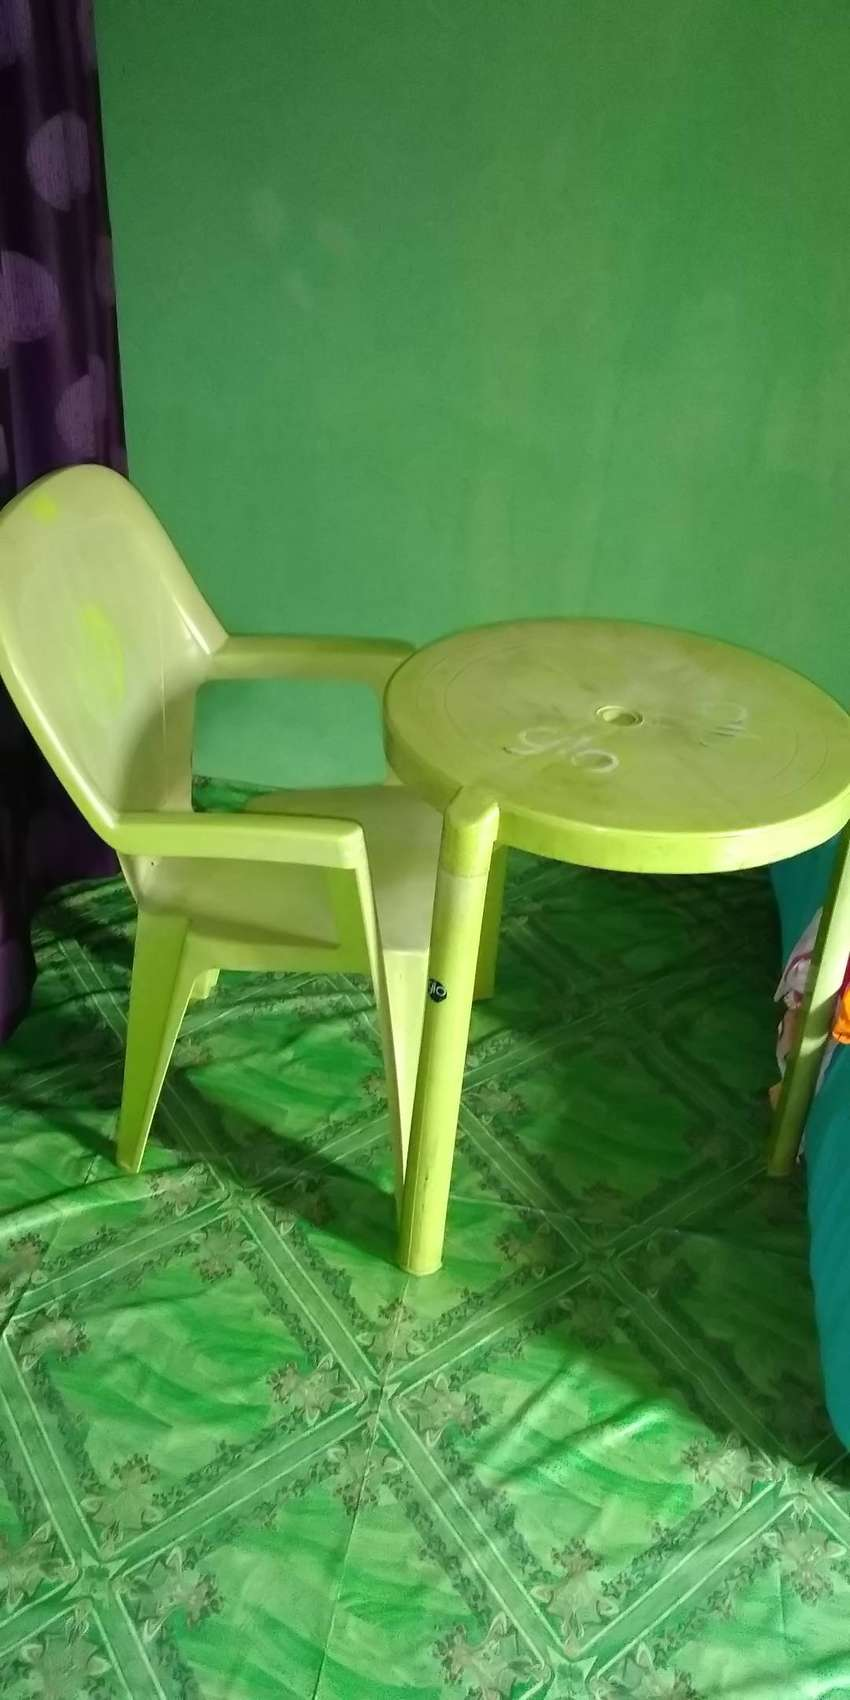 Plastic chair & table 0